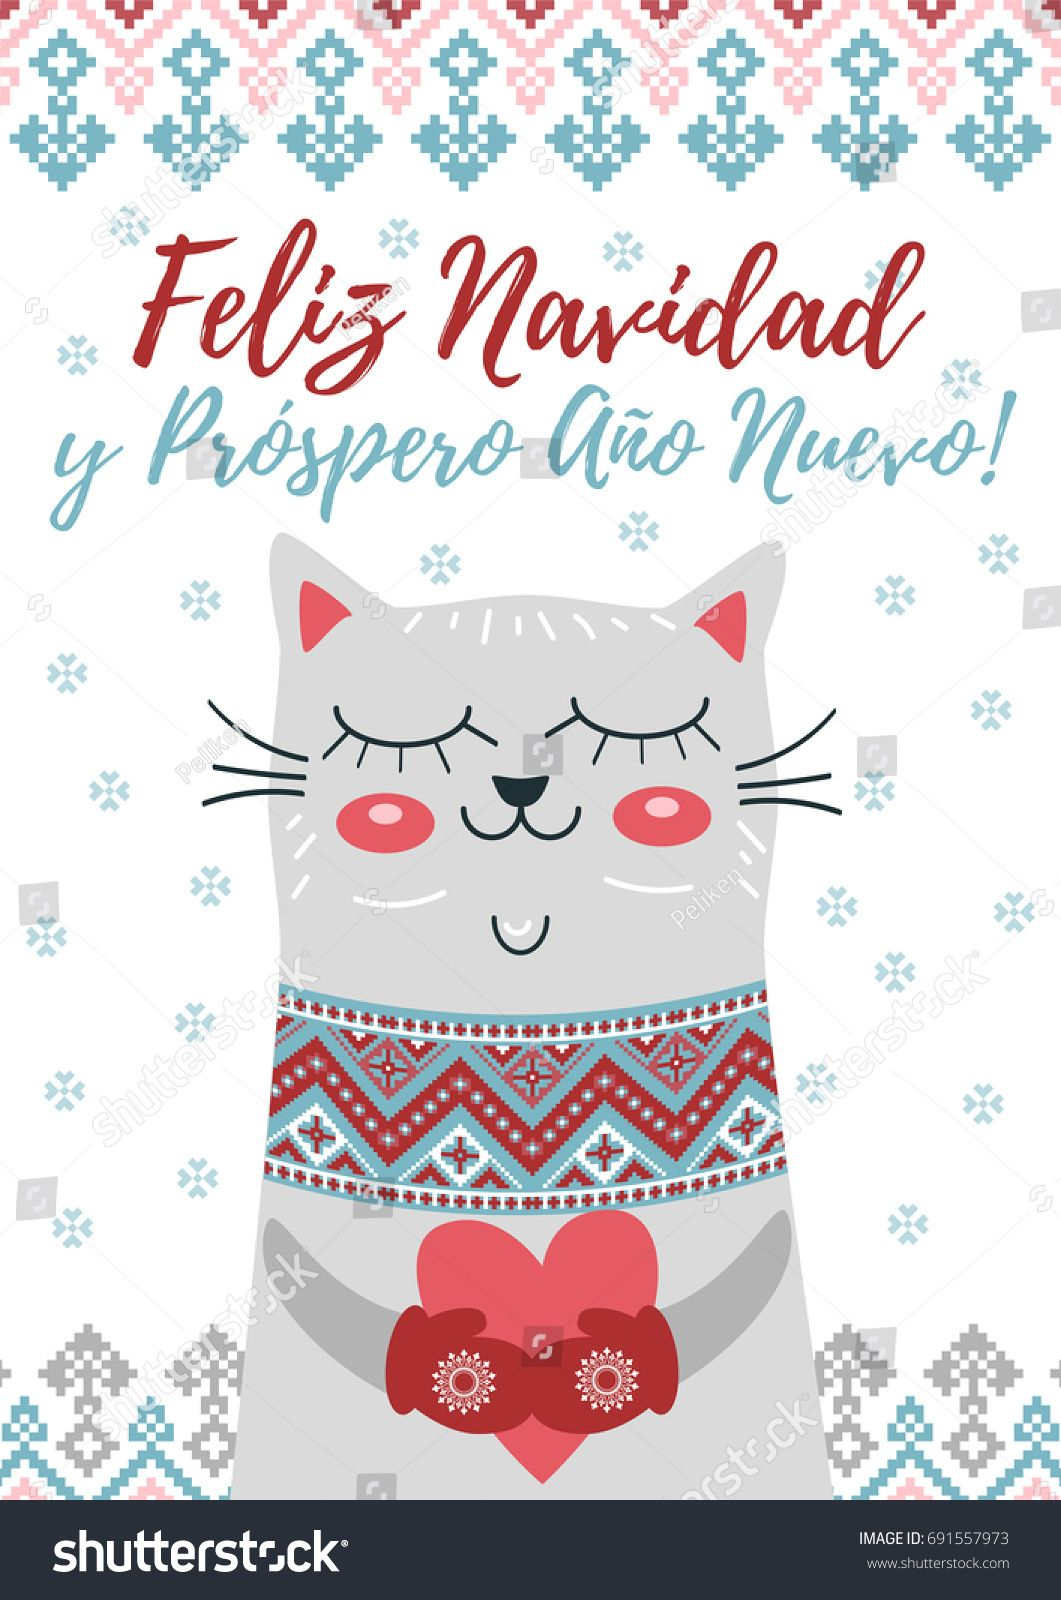 Feliz navidad y prospero ano nuevo happy christmas and happy new happy christmas and happy new year in spanish language greeting card with cute cat snowflakes and winter ornament vector holiday poster buy this stock kristyandbryce Images